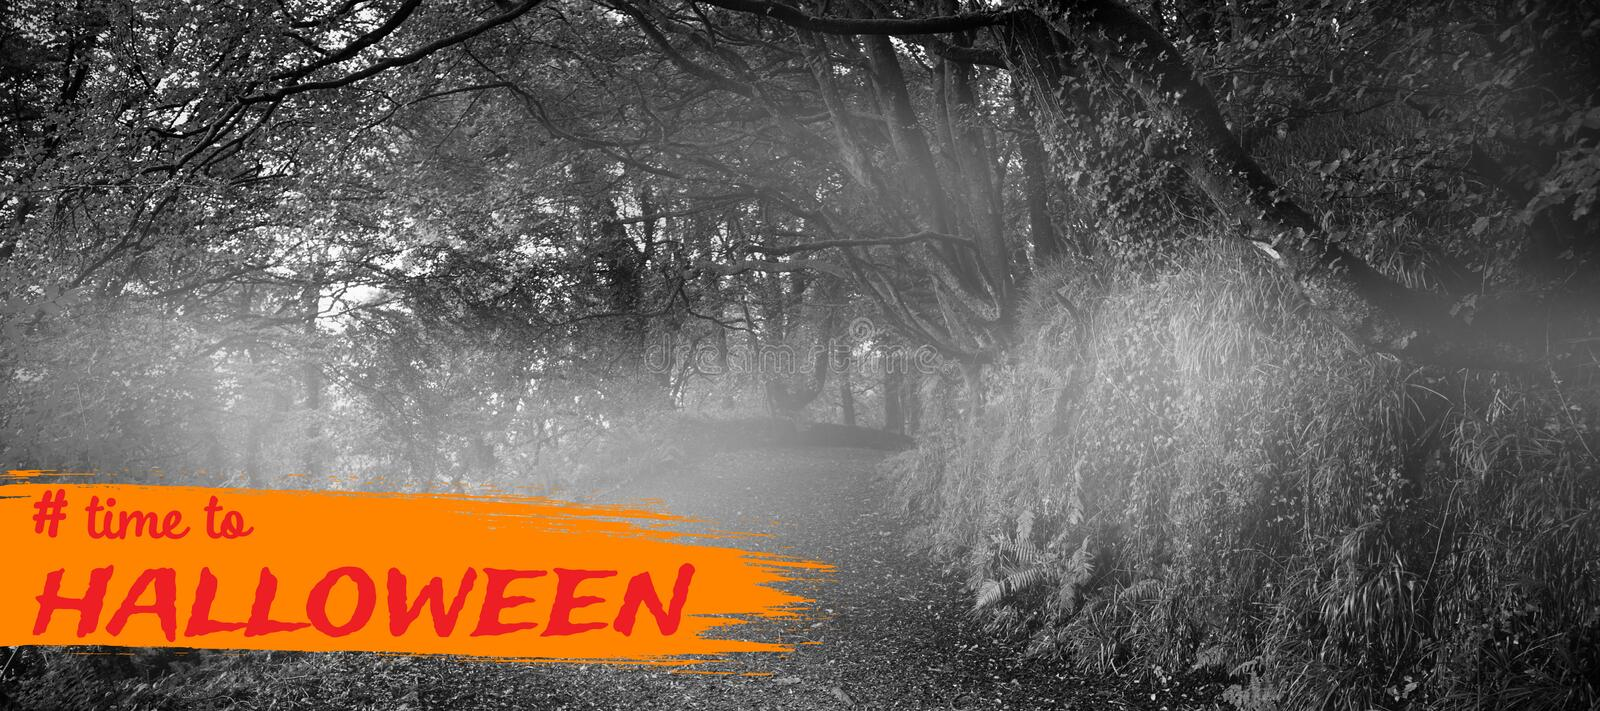 Composite image of graphic image of time to halloween text. Graphic image of time to Halloween text against dark way in the woods stock photos